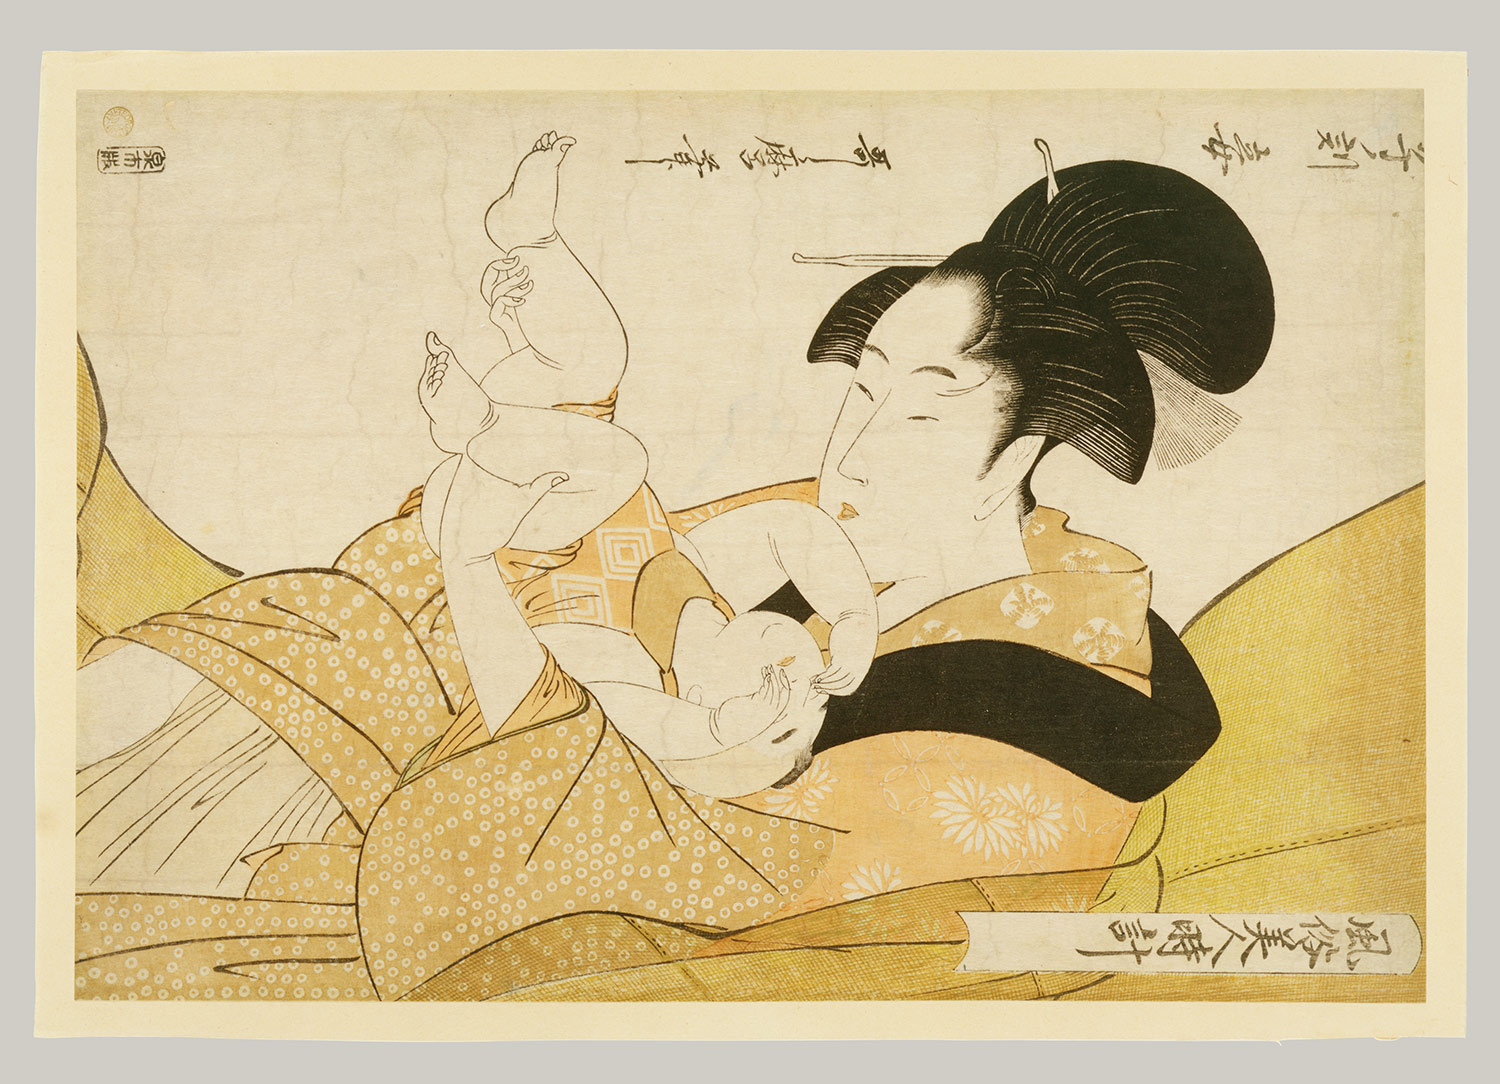 Midnight: The Hours of the Rat; Mother and Sleepy Child, Edo period (1615–1868), ca. 1790<br /> Kitagawa Utamaro (Japanese, 1753–1806)<br /> Polychrome woodblock print; H. 14 3/8 in. (36.5 cm), W. 9 5/8 in. (24.4 cm)<br /> Rogers Fund, 1922 (JP1278)<br /> Metropolitan Museum of Art